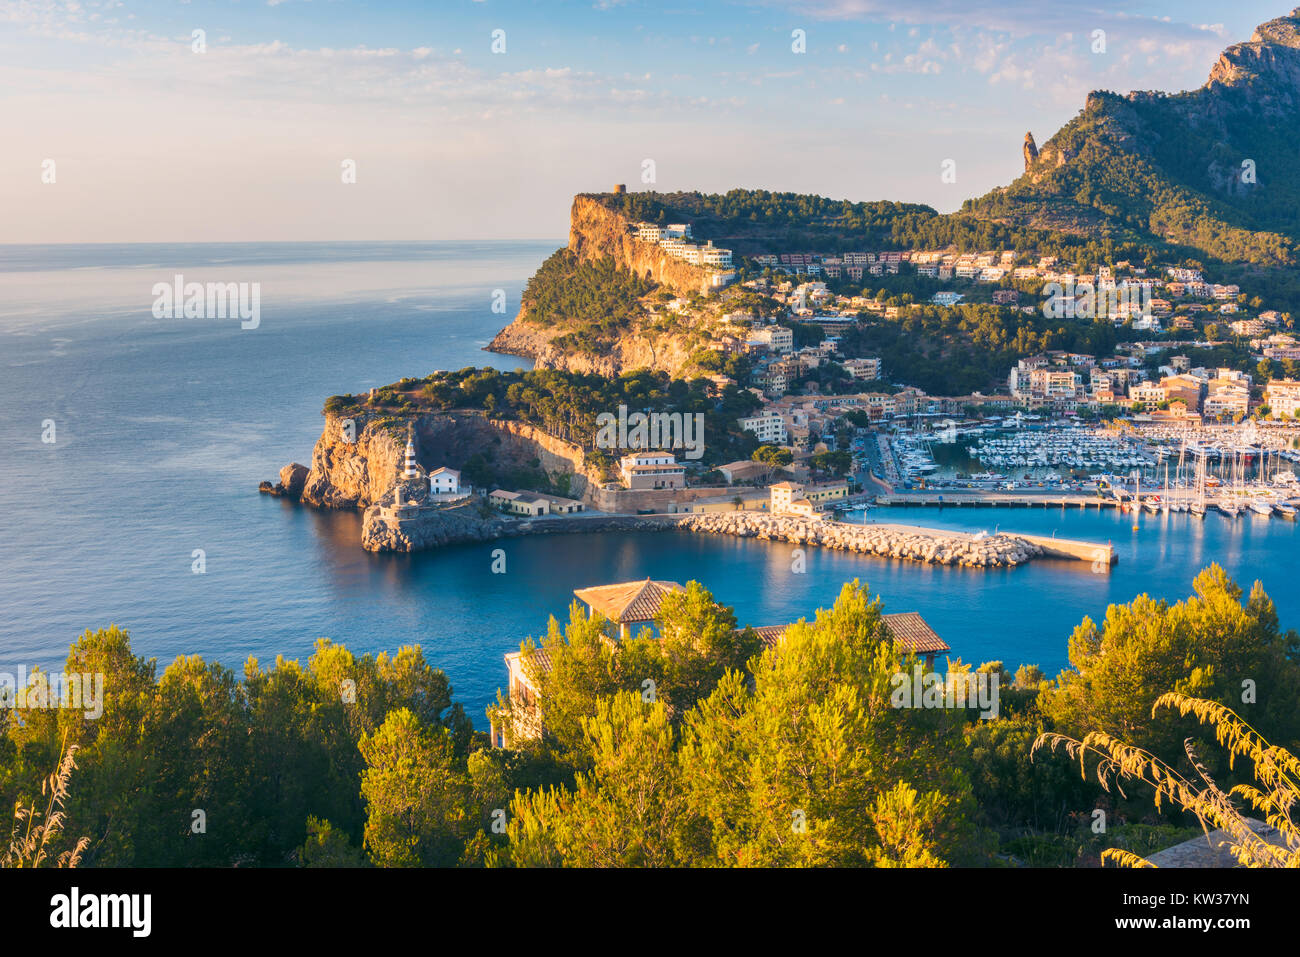 High Angle View on Port de Soller, Mallorca, Balearic Islands, Spain at Sunset - Stock Image